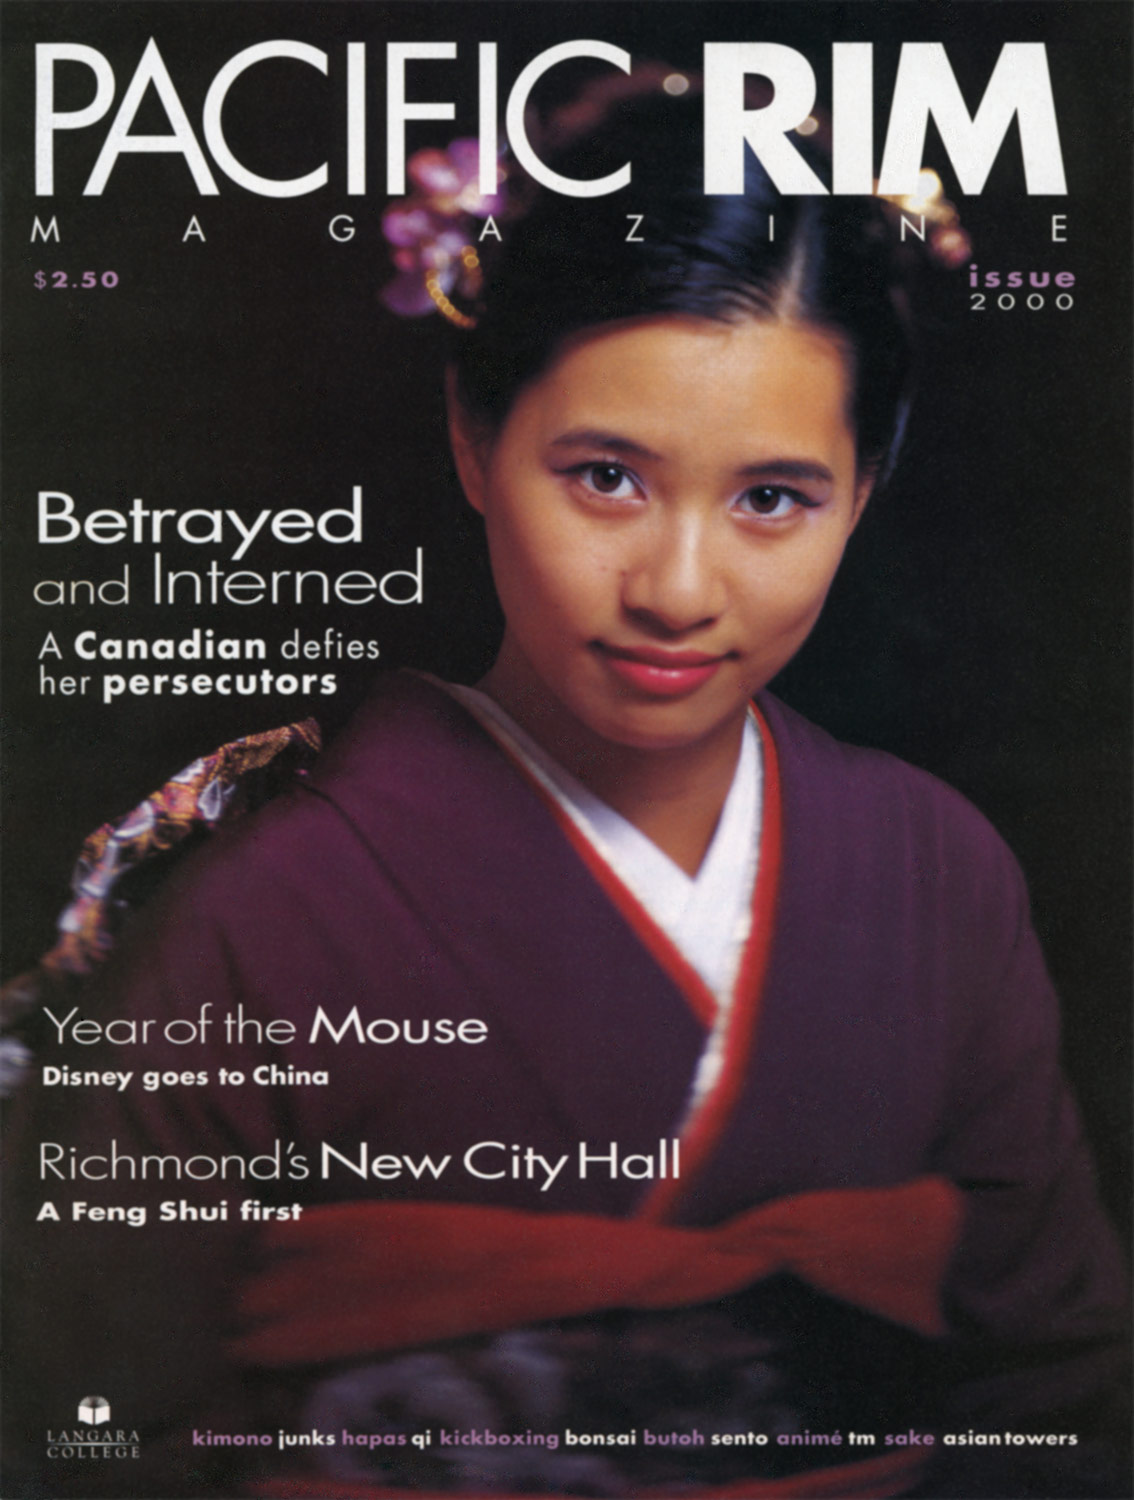 2000 Pacific Rim Cover. Image of woman in traditional Japanese dress.